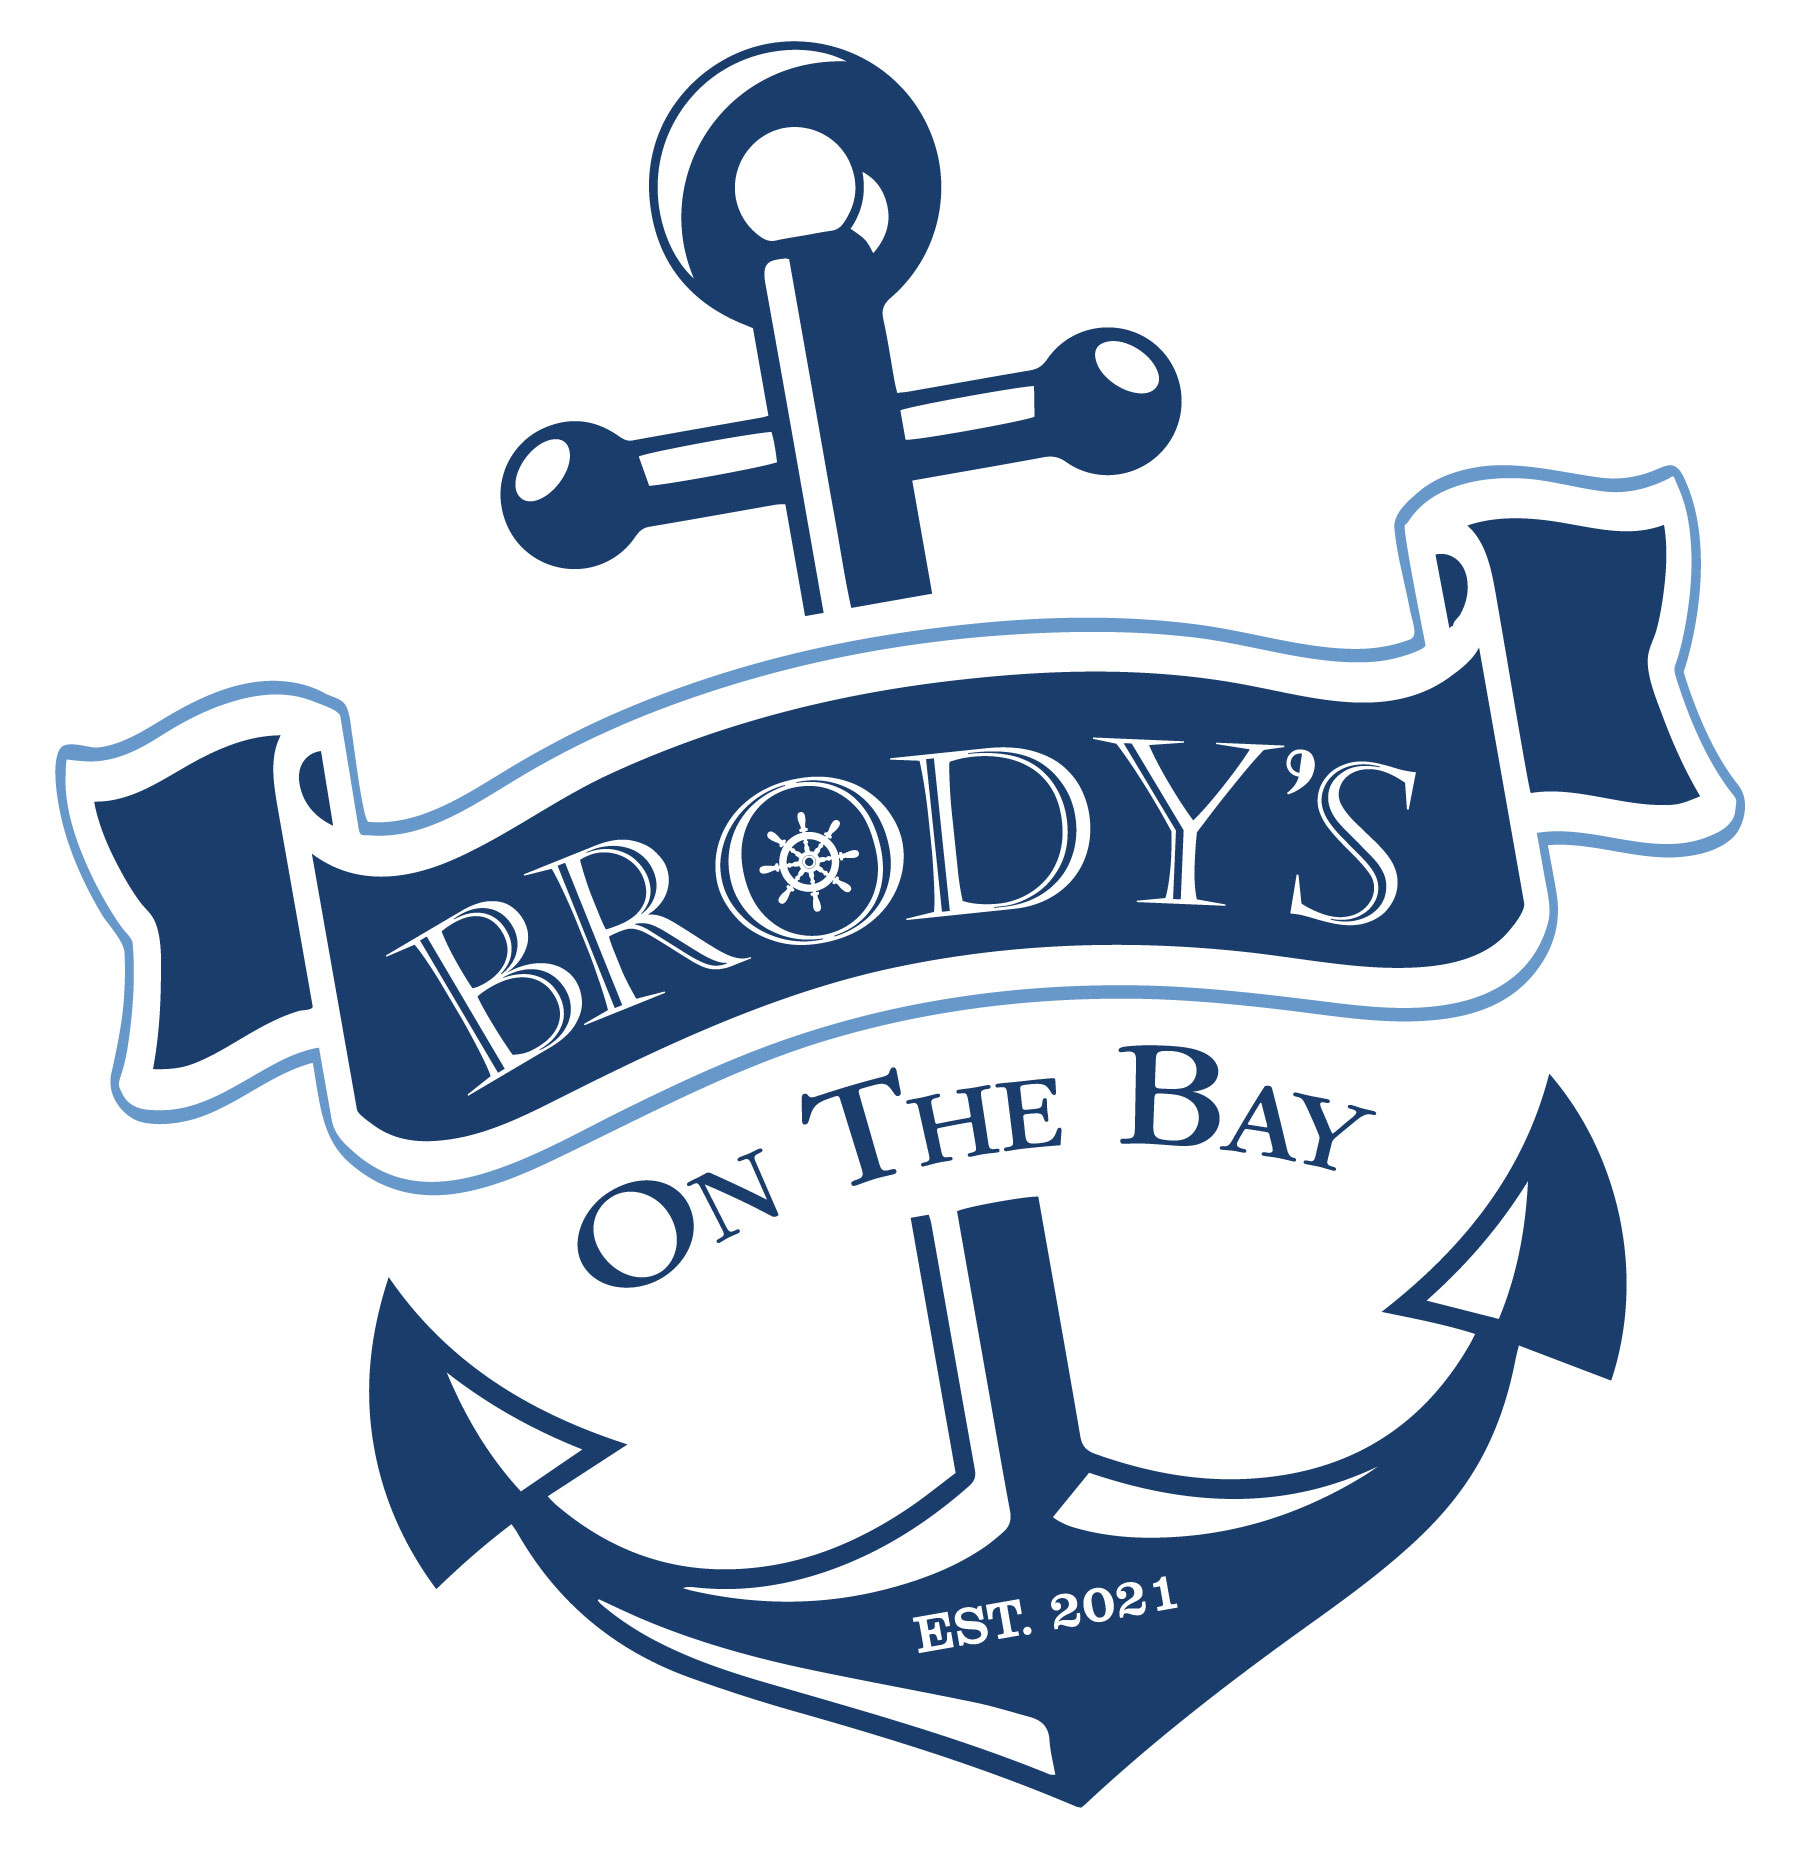 Brody's on the Bay